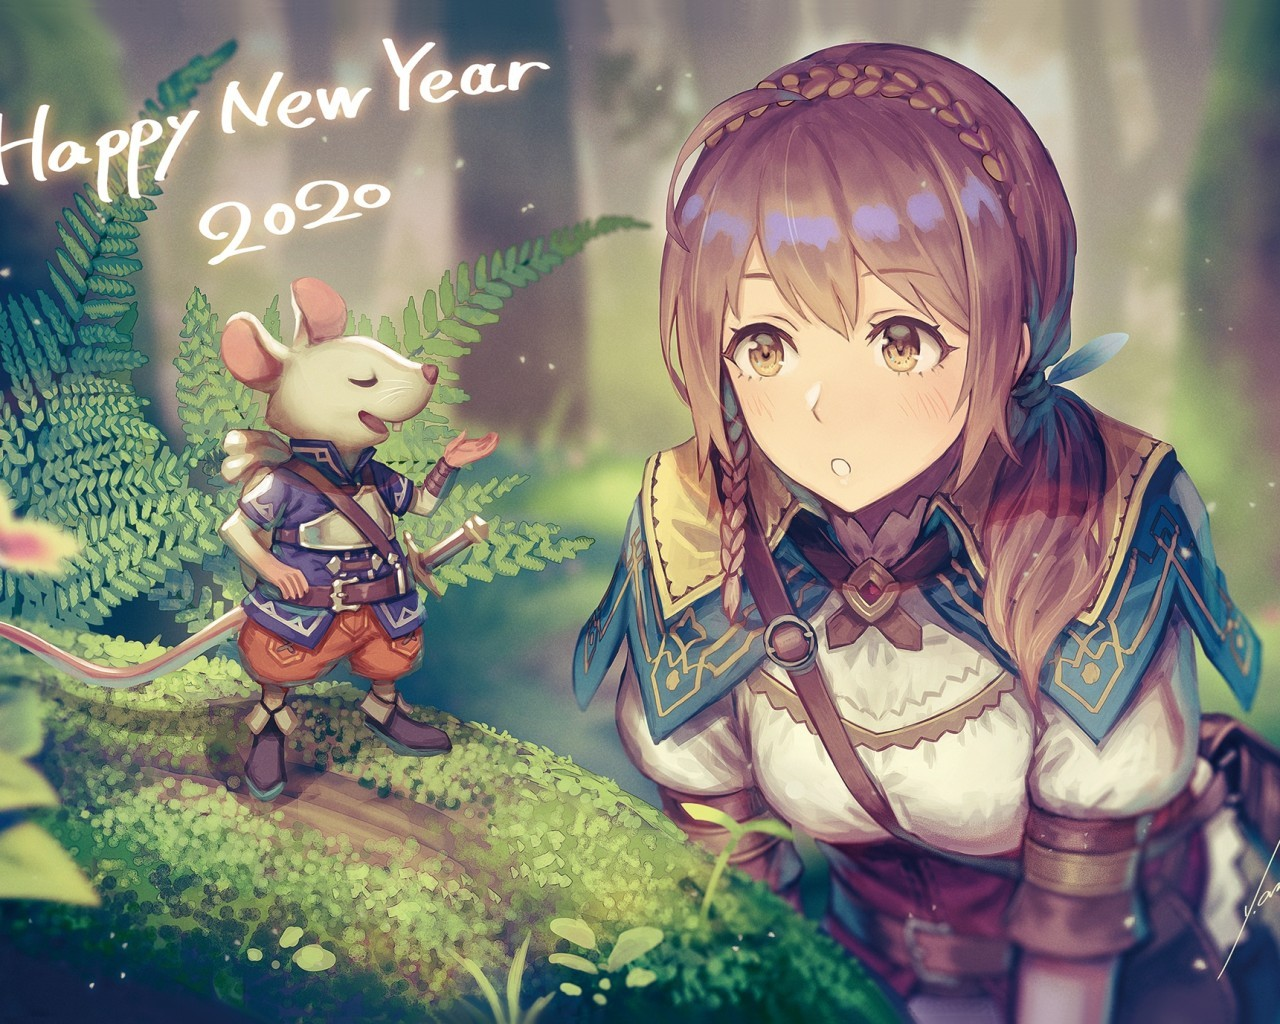 Download 1280x1024 Anime Girl Adventurer Forest Light Armor 1280x1024